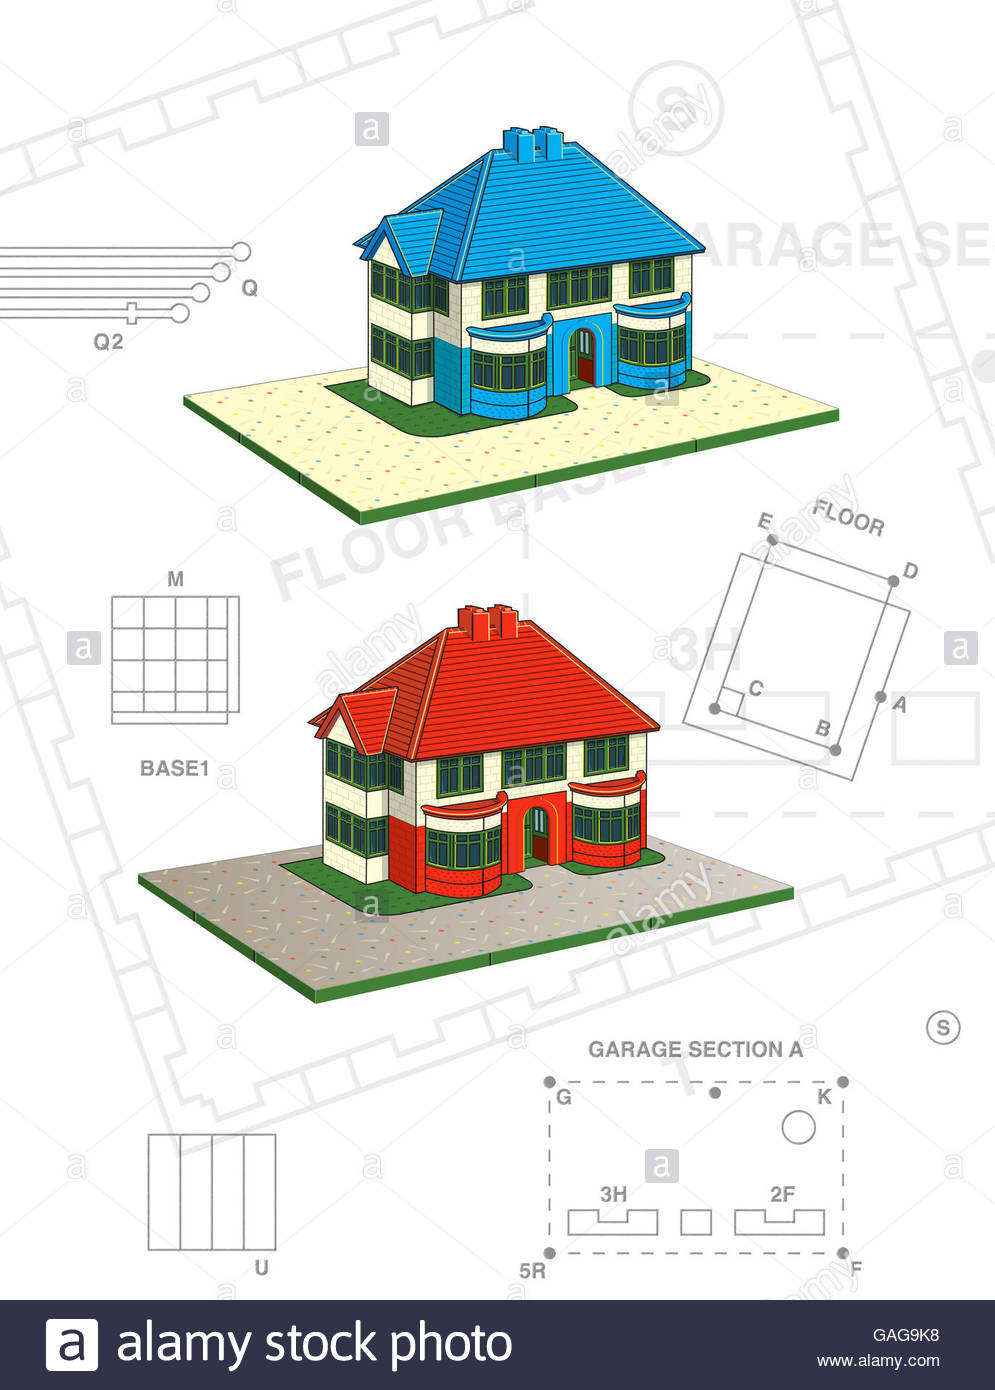 Vintage thirties house style construction kit toy scale model illustration - Stock Image